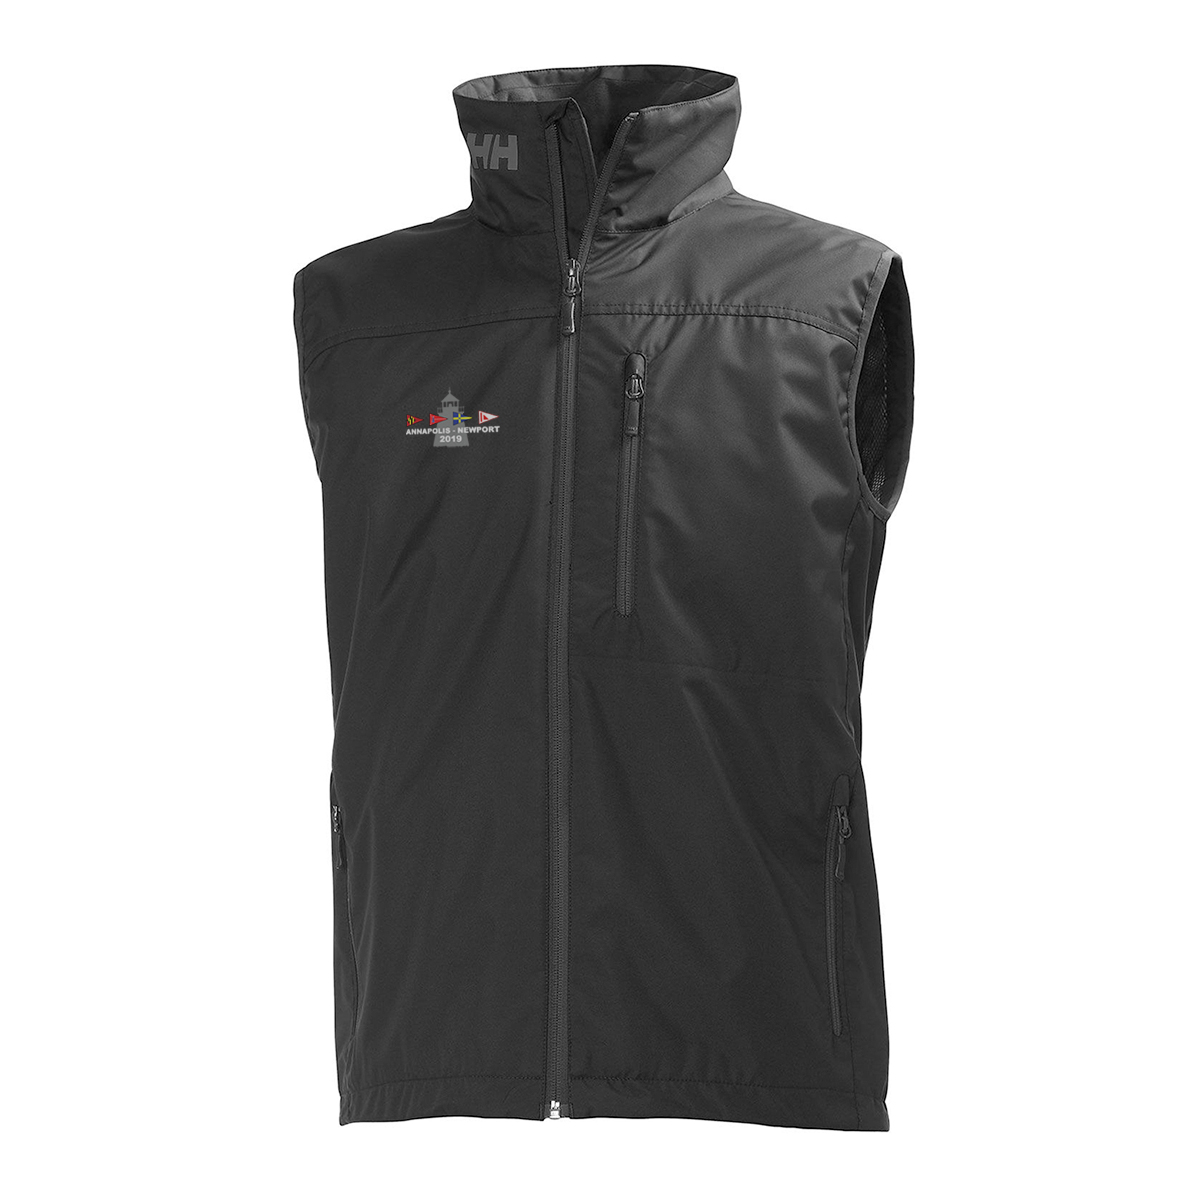 Annapolis to Newport 2019- Men's Helly Hansen Crew Vest